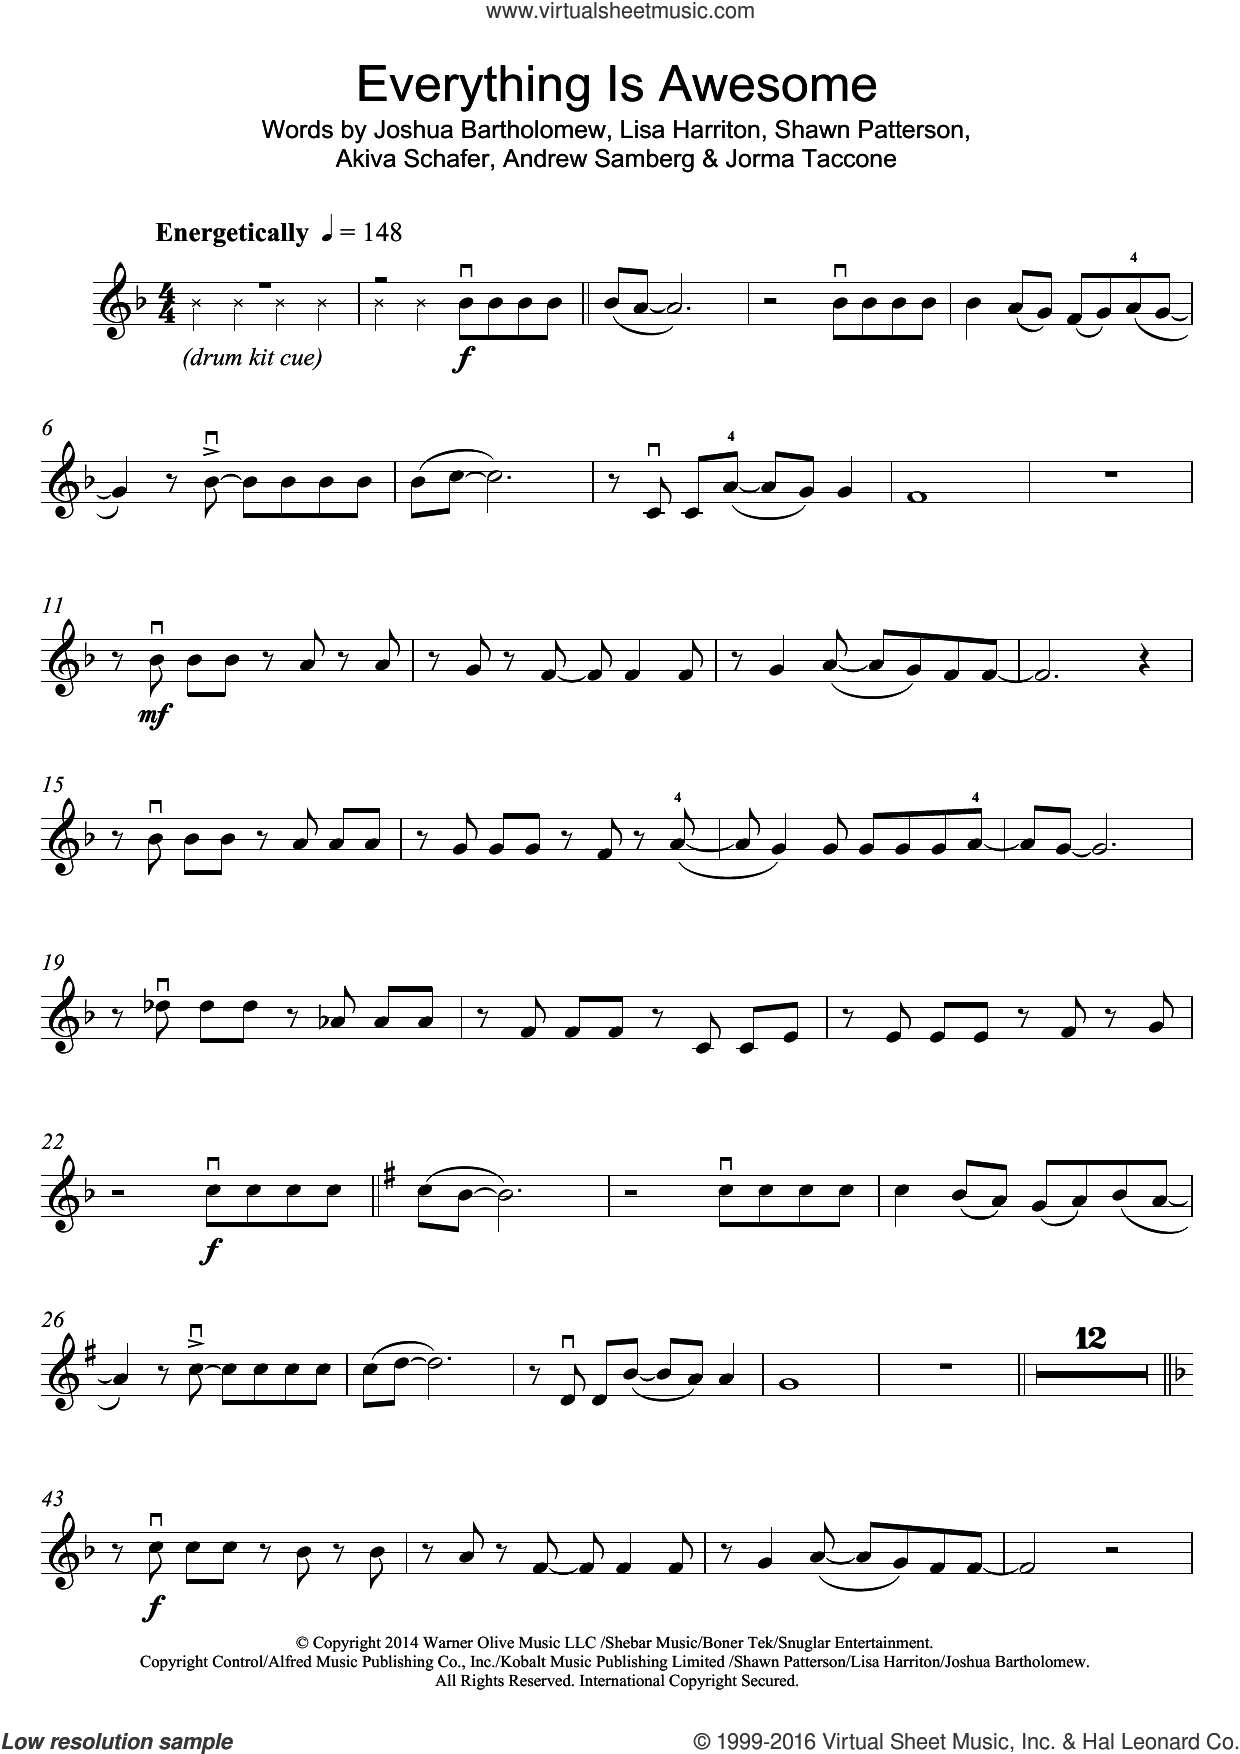 Everything Is Awesome (featuring The Lonely Island) (From The Lego Movie) sheet music for violin solo by Tegan and Sara, The Lonely Island, Akiva Schafer, Andrew Samberg, Jorma Taccone, Joshua Bartholomew, Lisa Harriton and Shawn Patterson, intermediate skill level